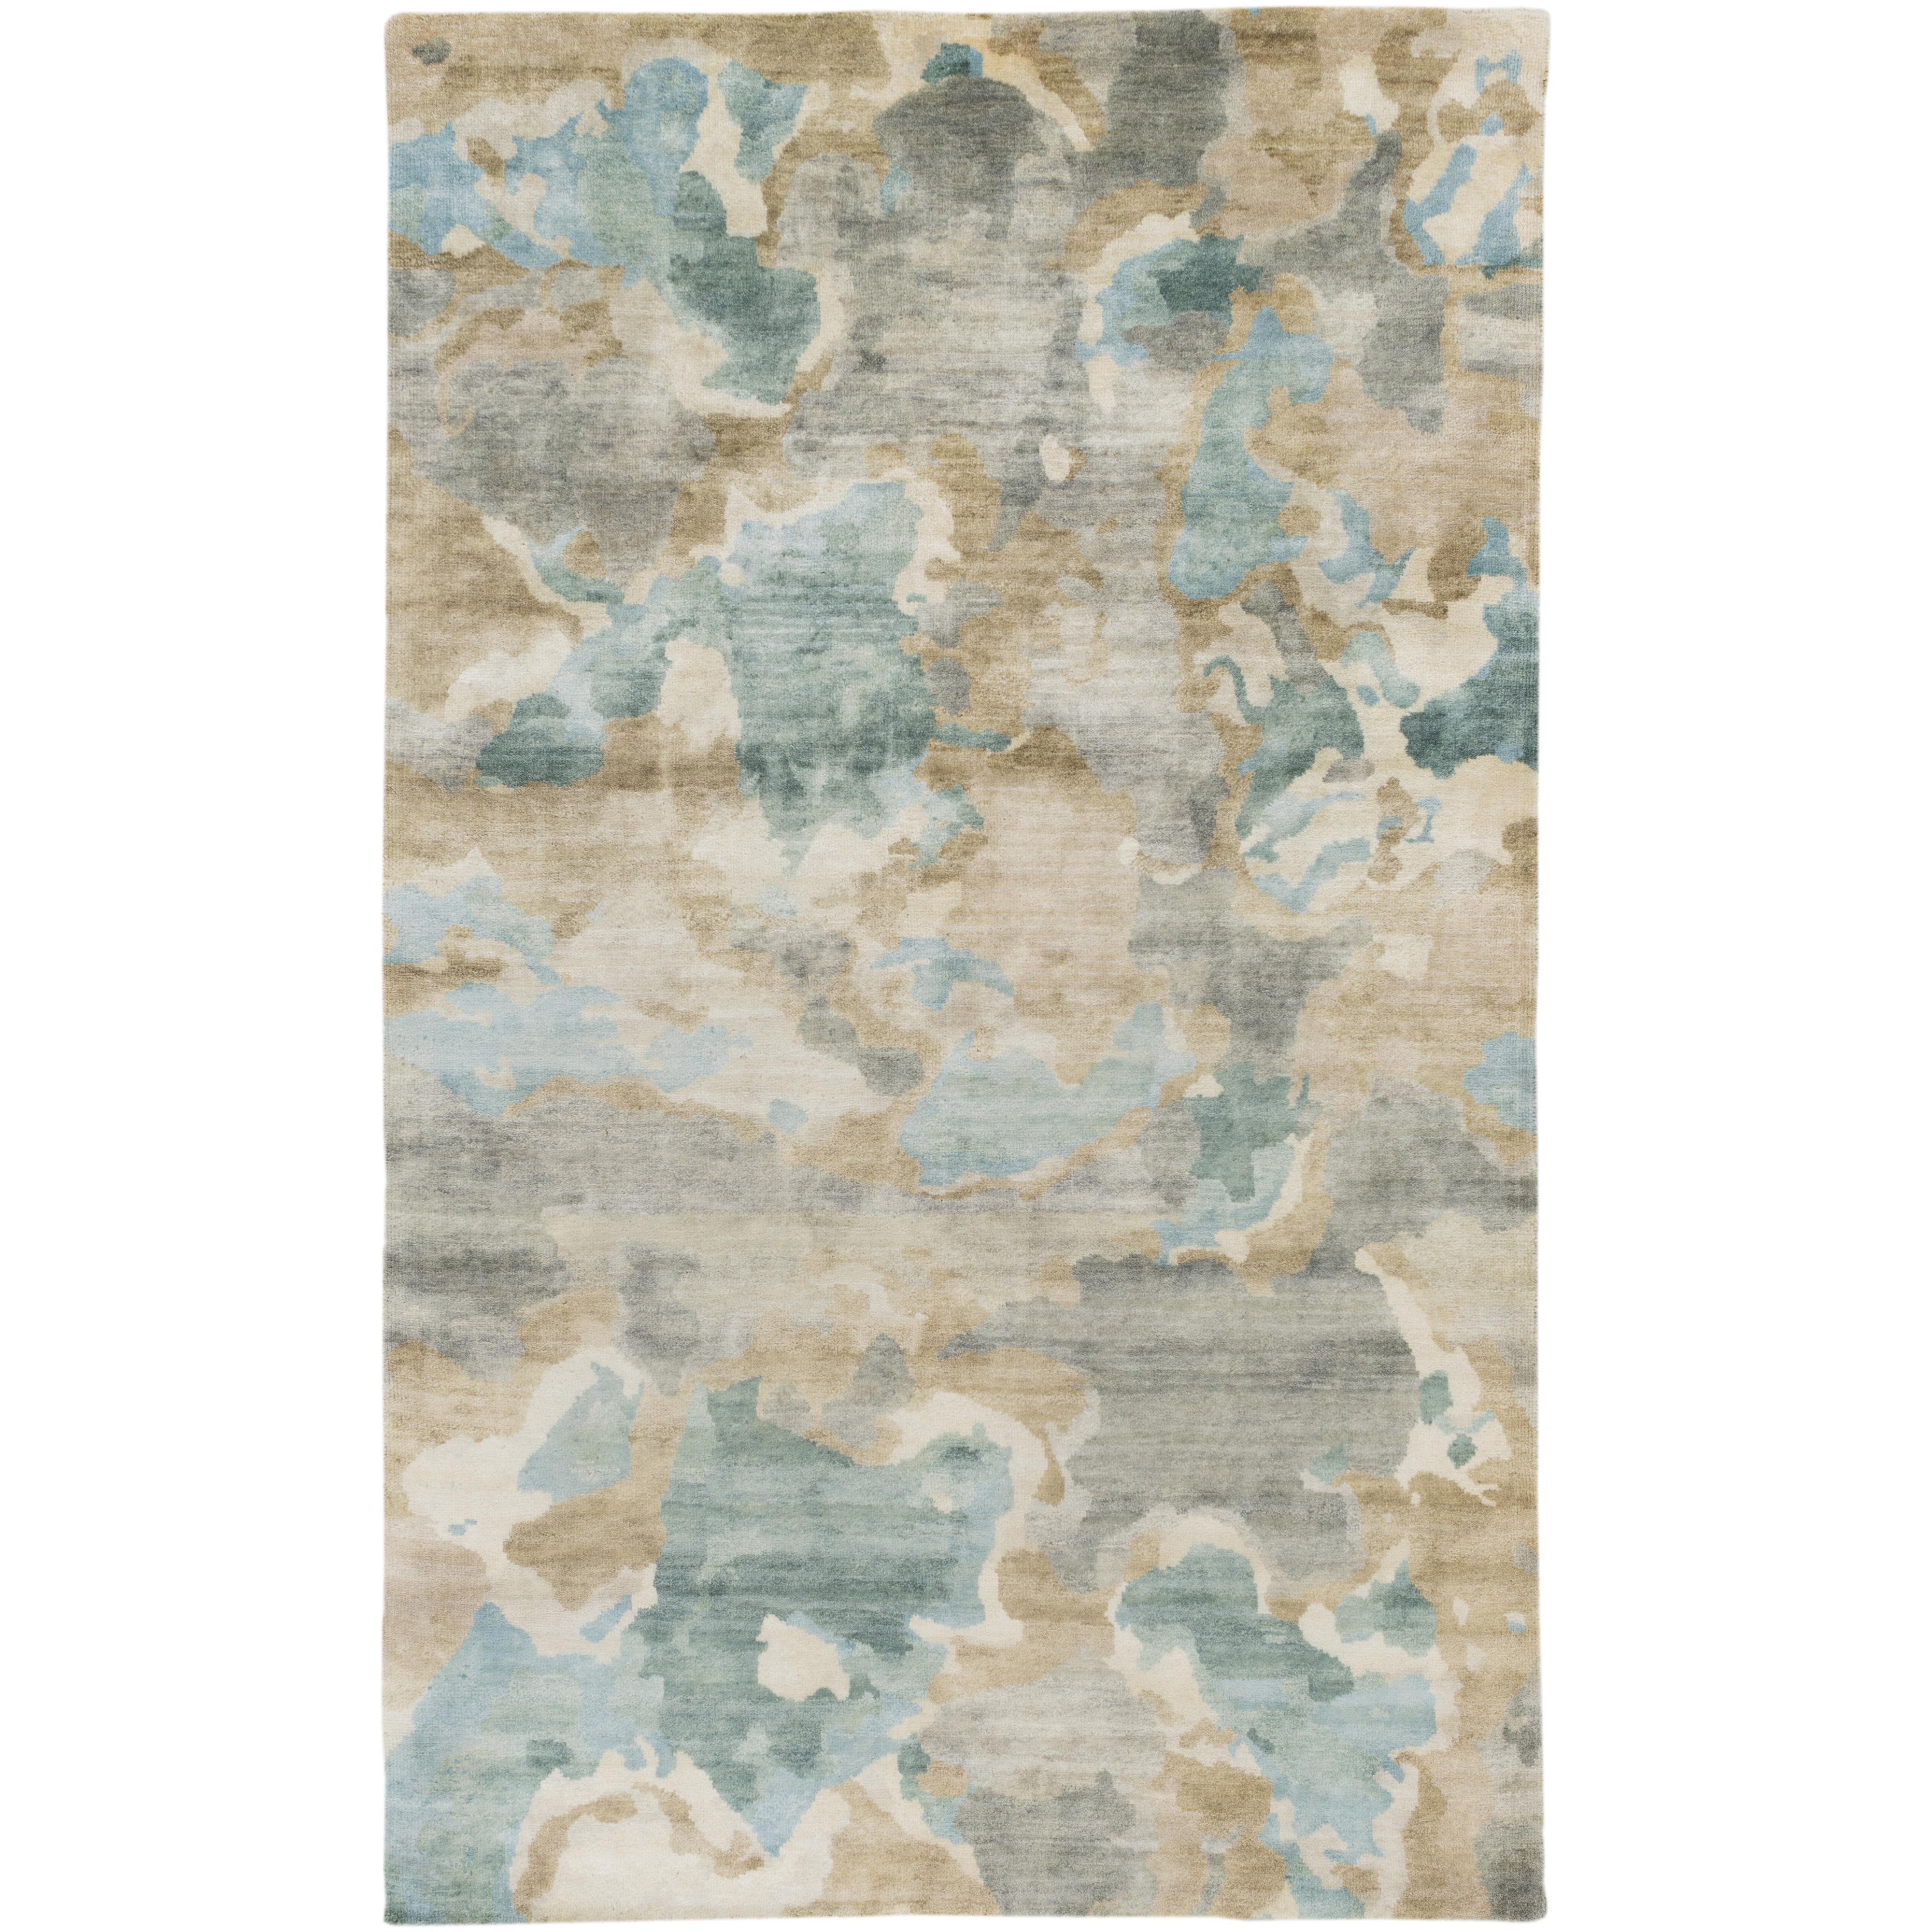 Surya Rugs Slice of Nature 5' x 8' - Item Number: SLI6407-58